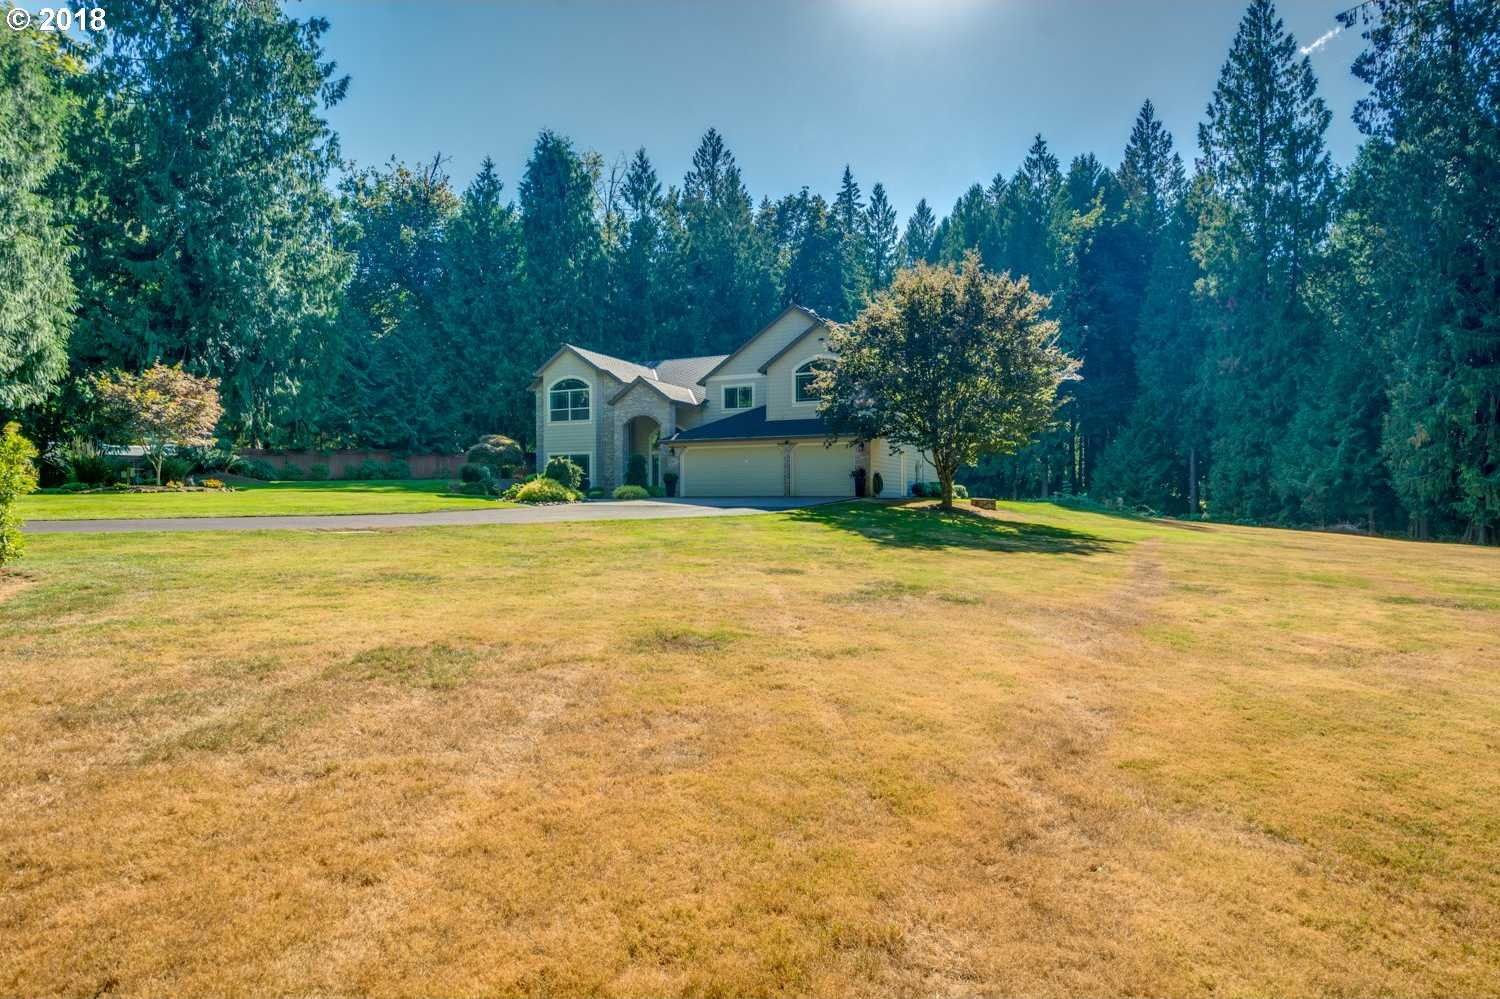 $925,000 - 6Br/3Ba -  for Sale in Gresham